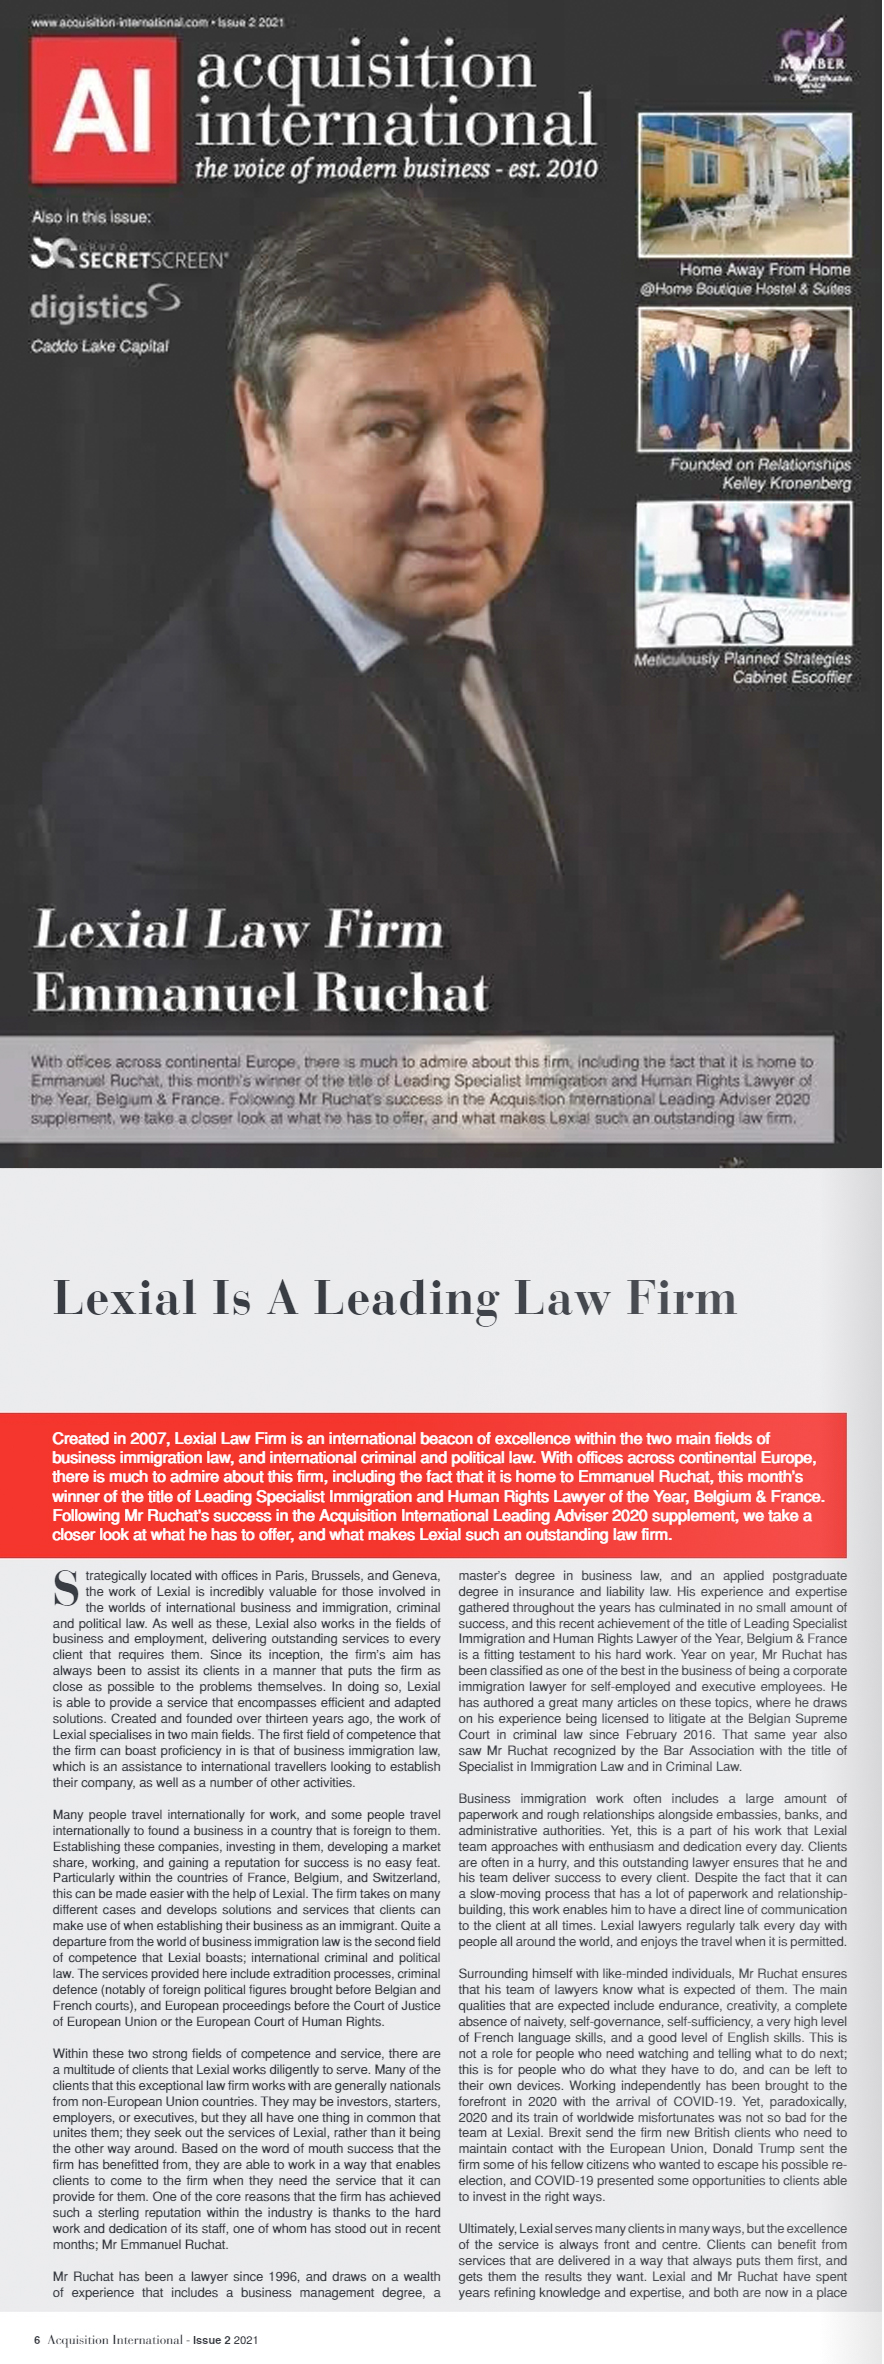 Lexial is a leading law firm by Acquisition International